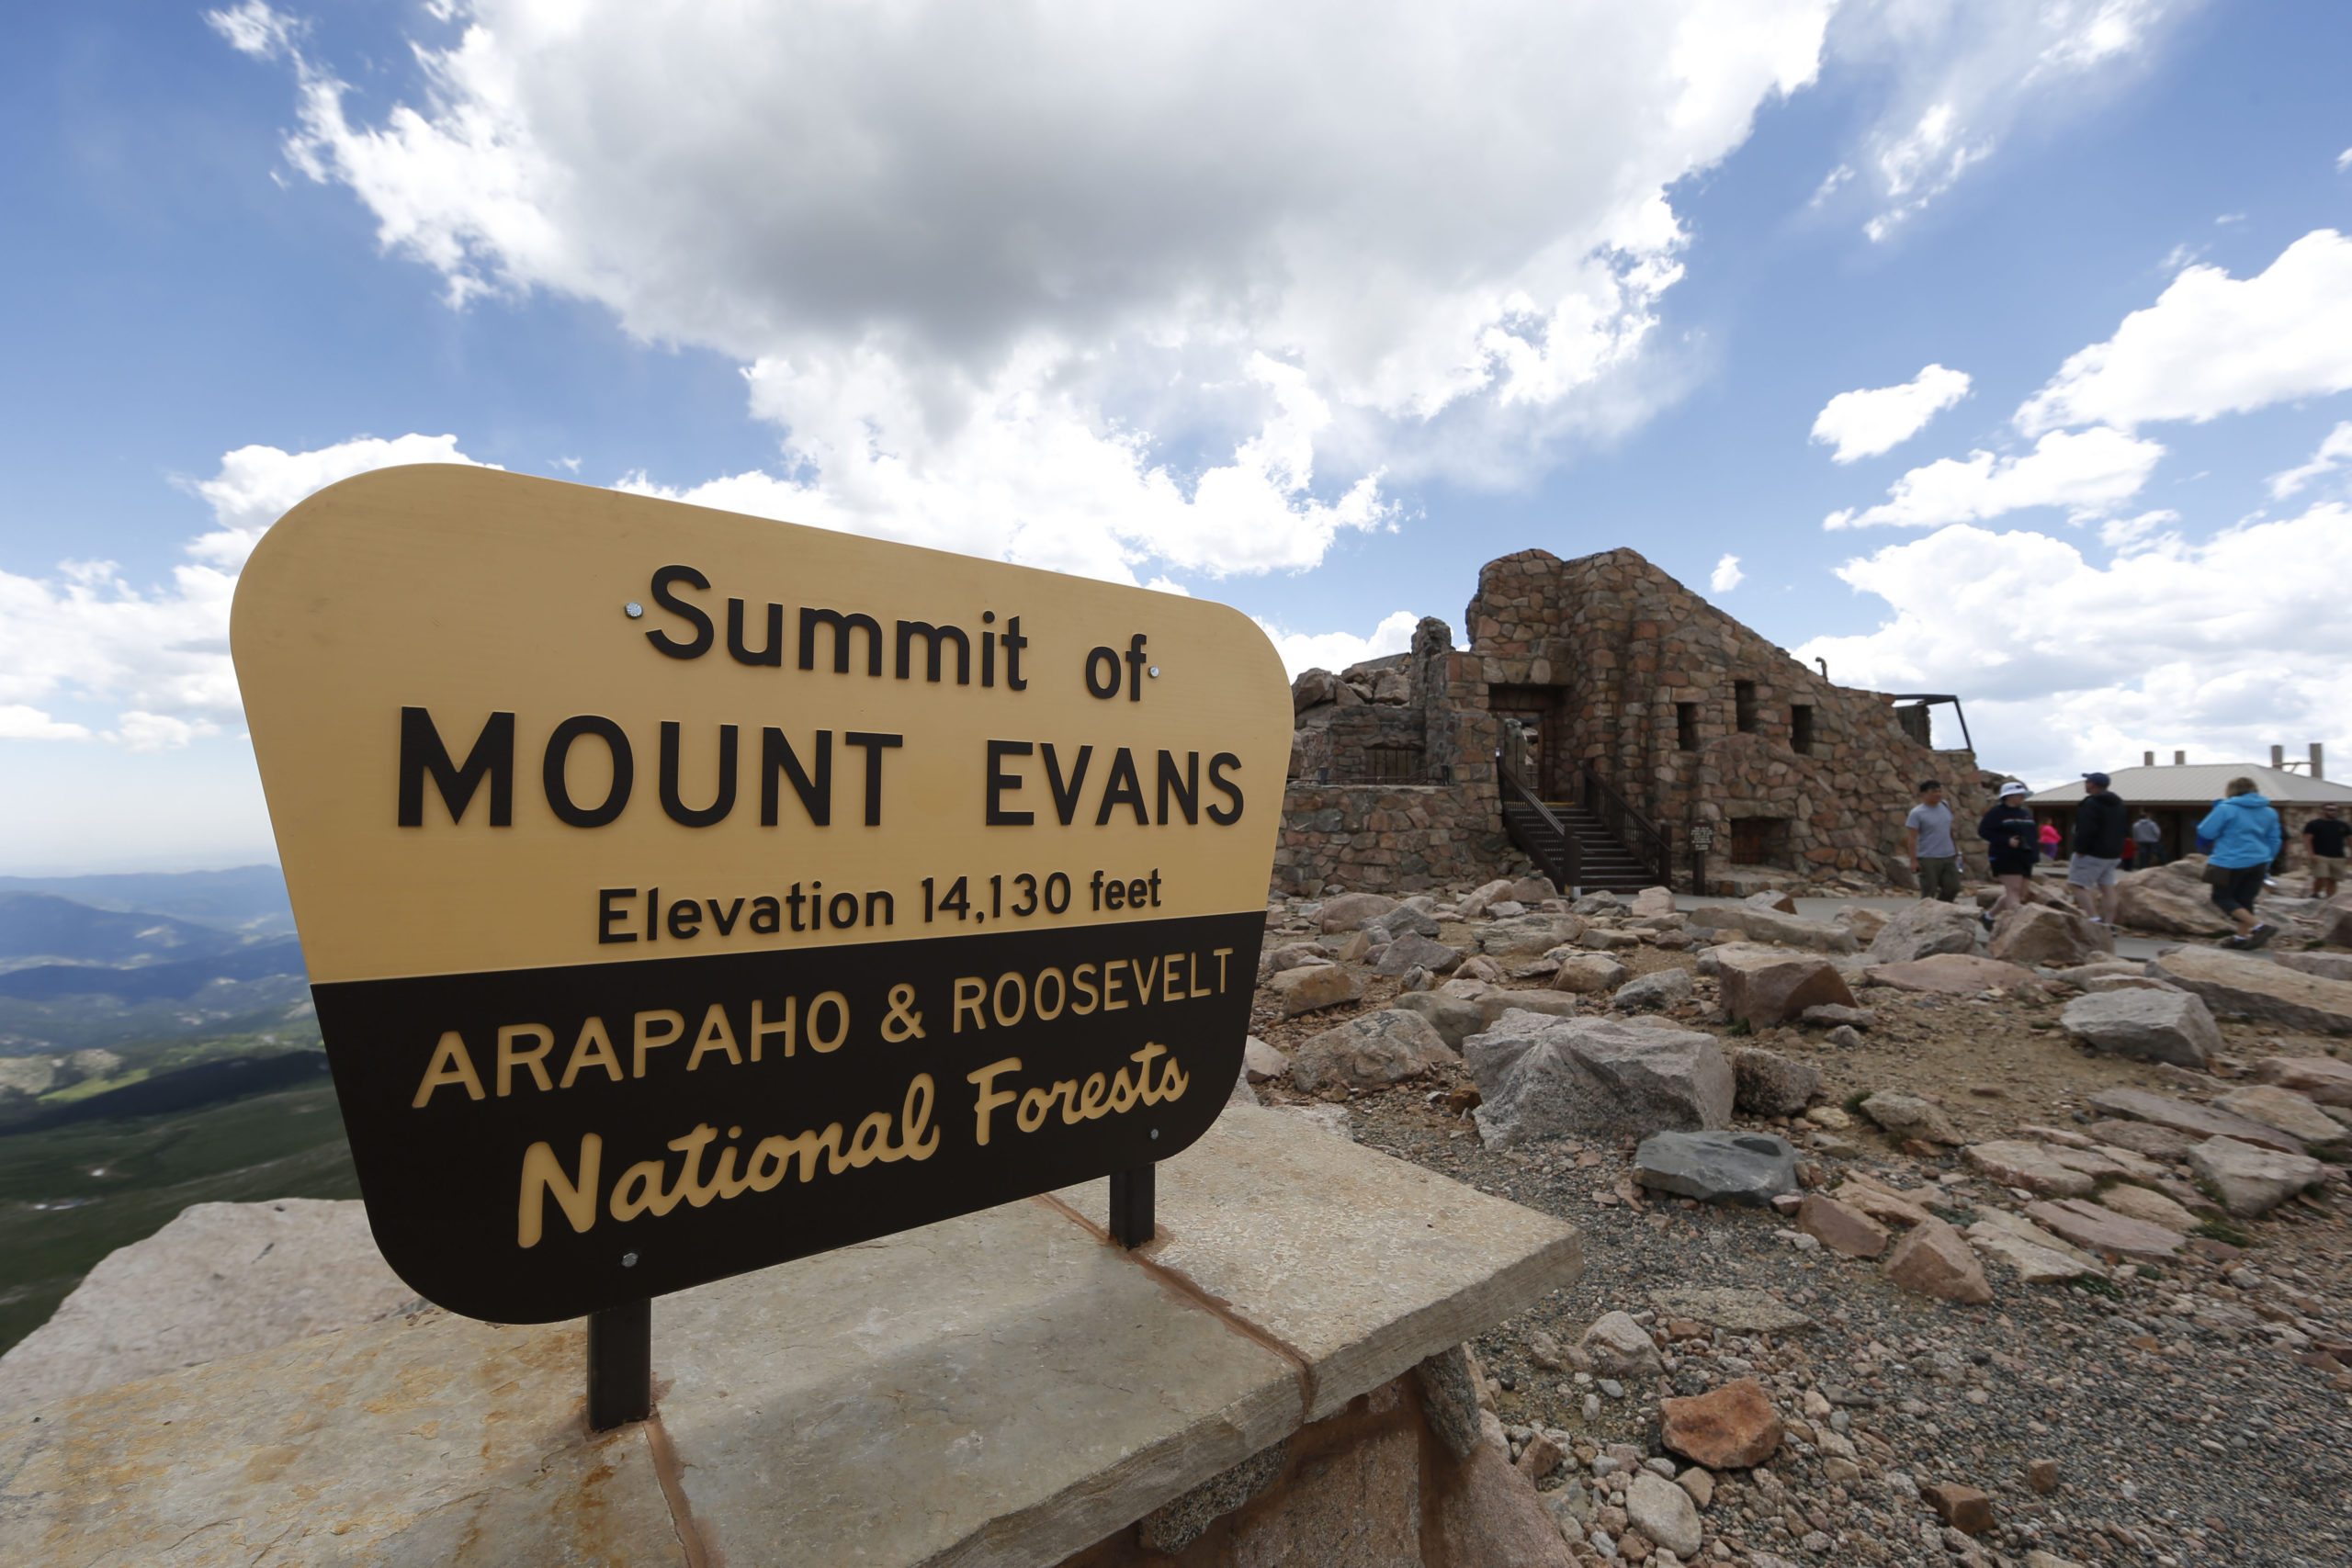 summit house on mount evans, Mount Evans Scenic Byway